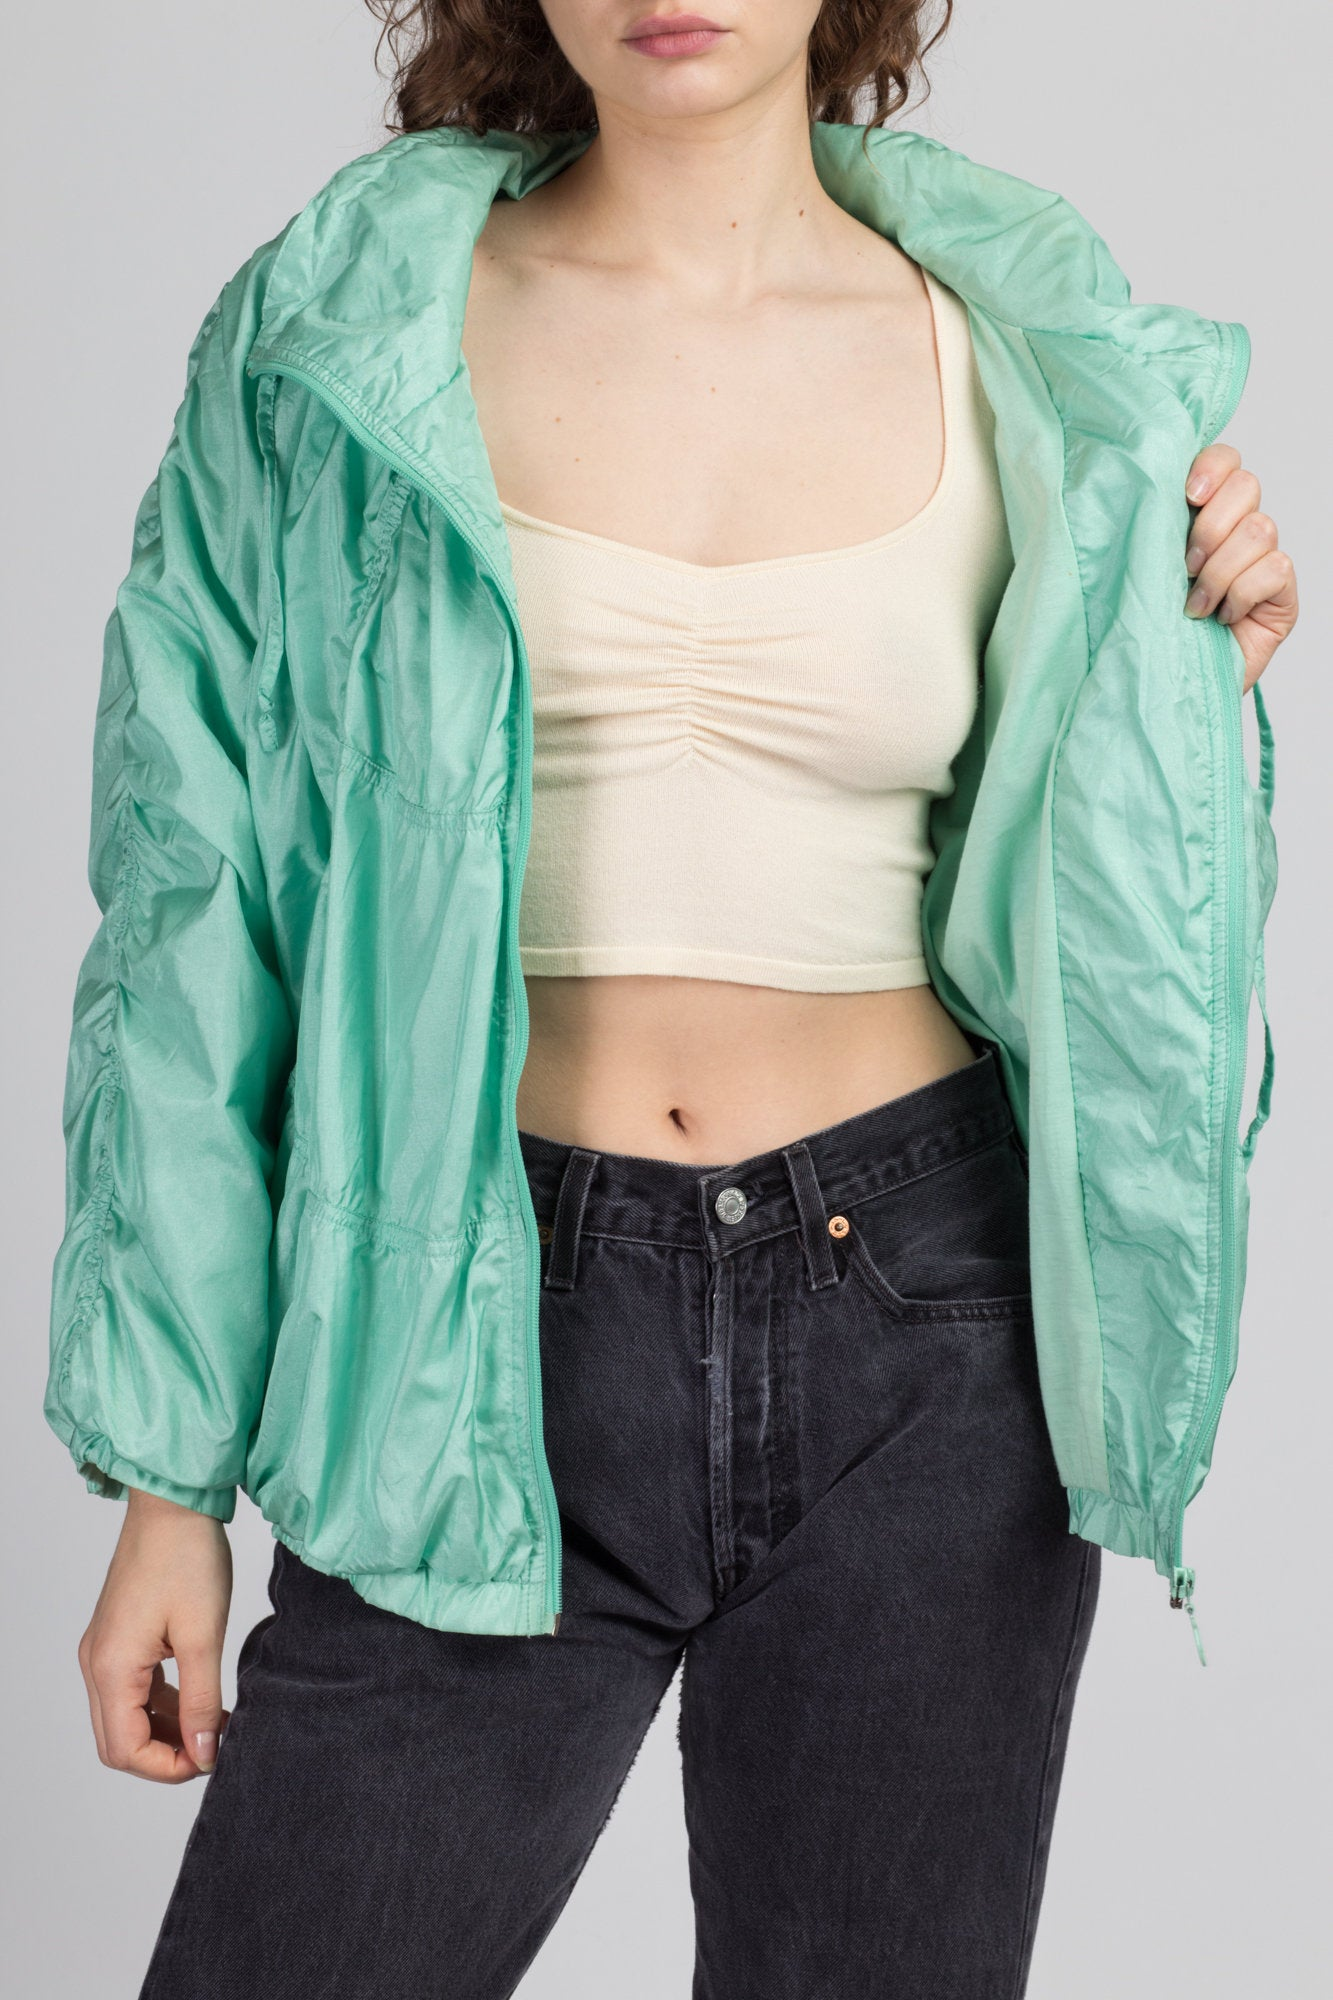 80s 90s Adidas Teal Green Ruched Windbreaker - Large